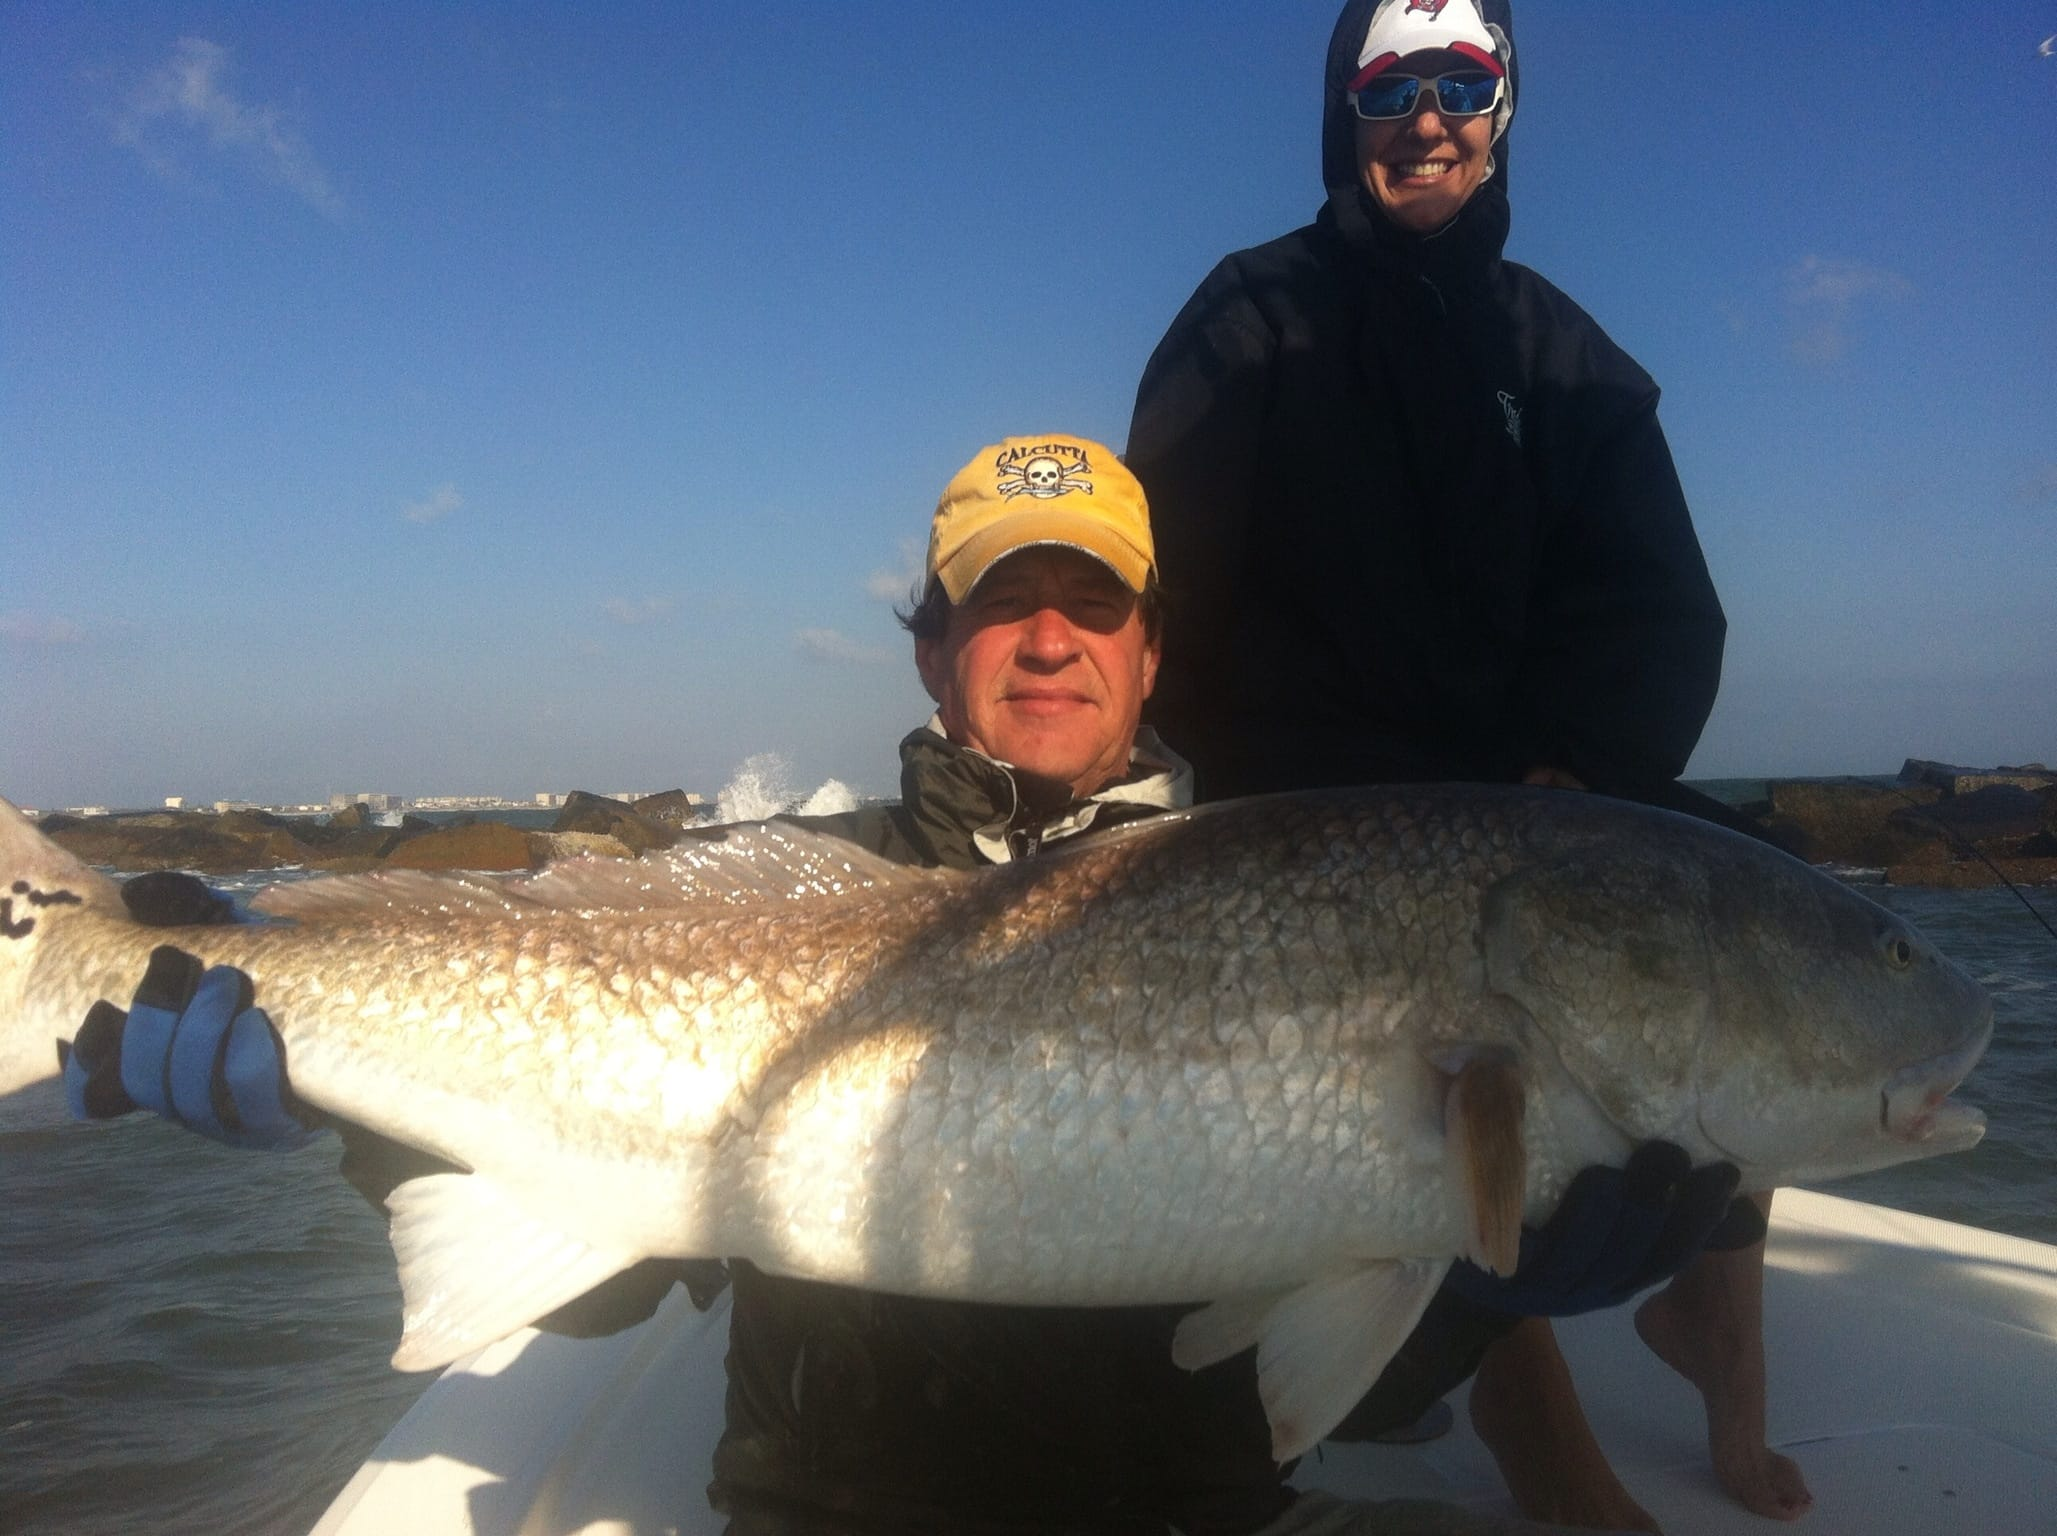 worldwidefishing  Daytona /Orlando /Ponceinlet Charters Fishing Tarpon redfish